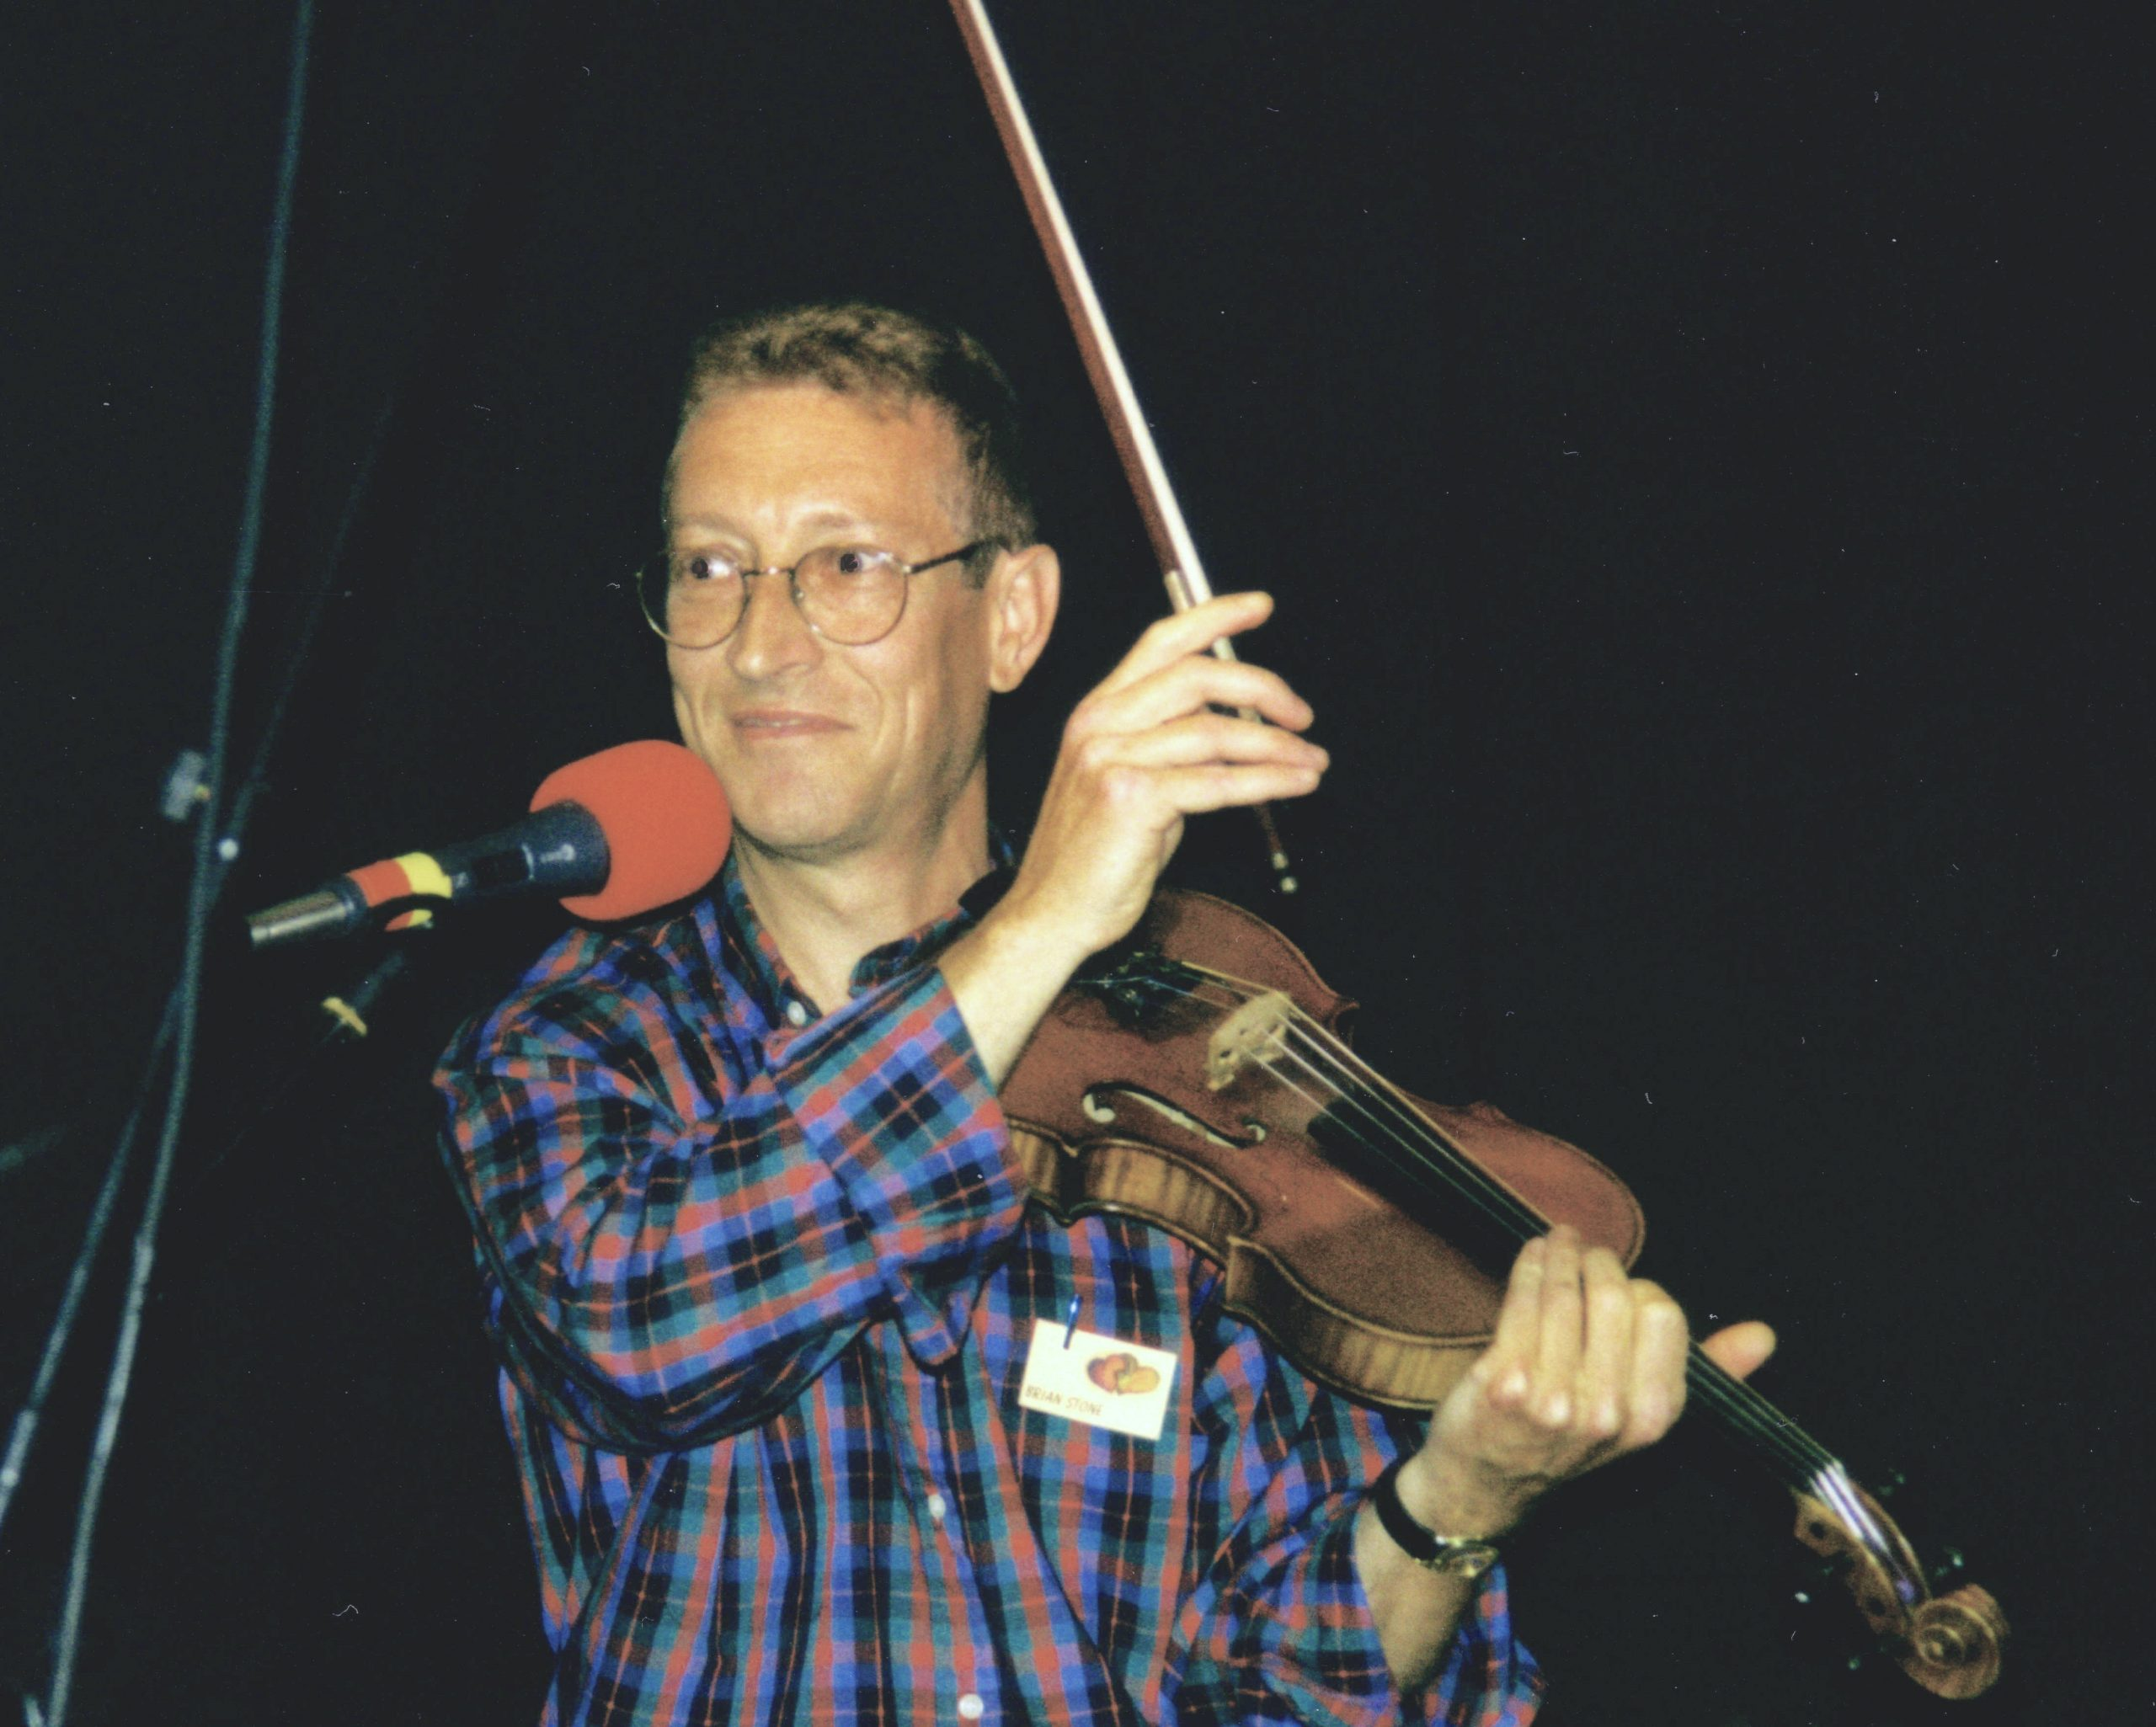 Brian Stone and his violin